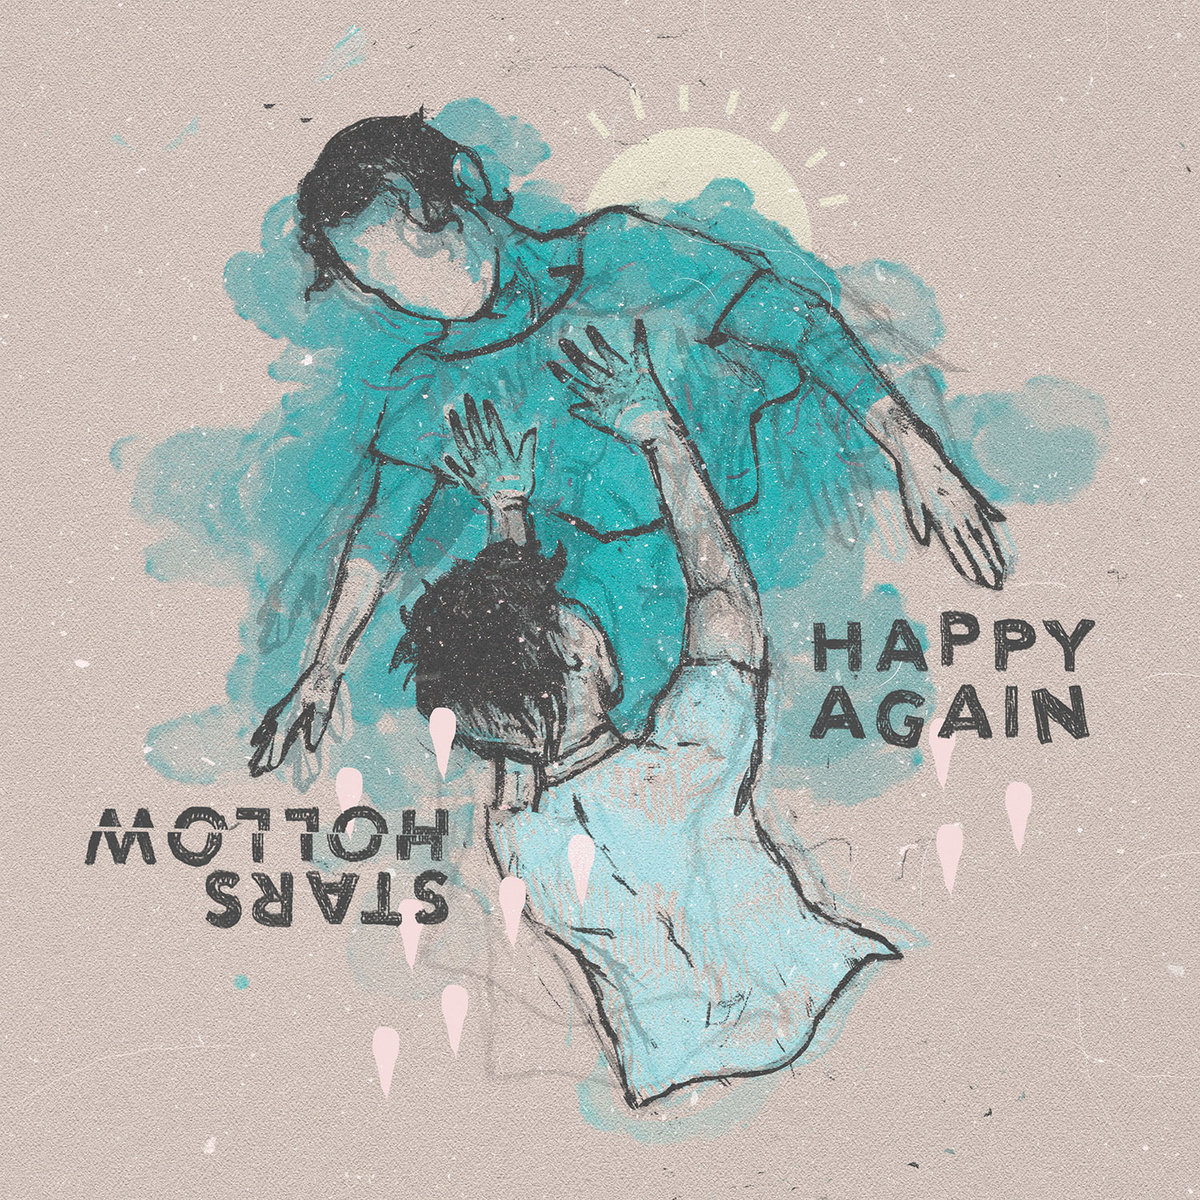 https://starshollowia.bandcamp.com/album/happy-again